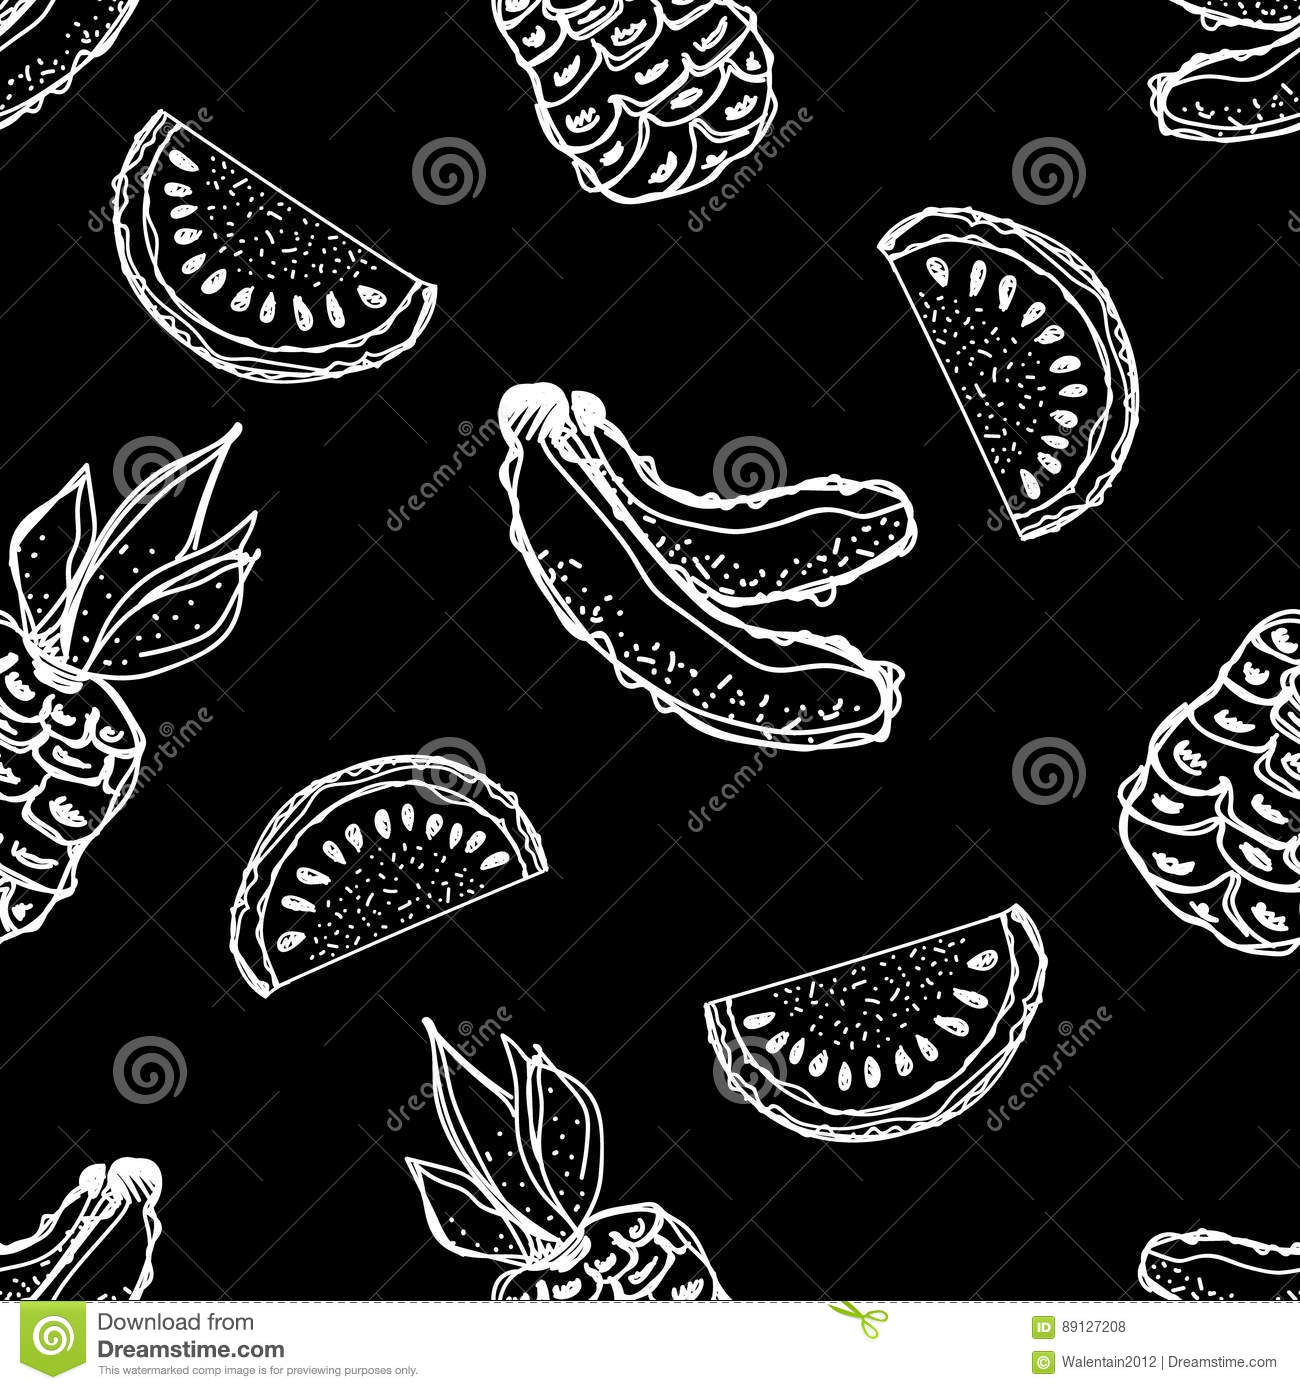 Line Drawing Wallpaper Uk : Seamless vector pattern hand drawn fruits illustration of